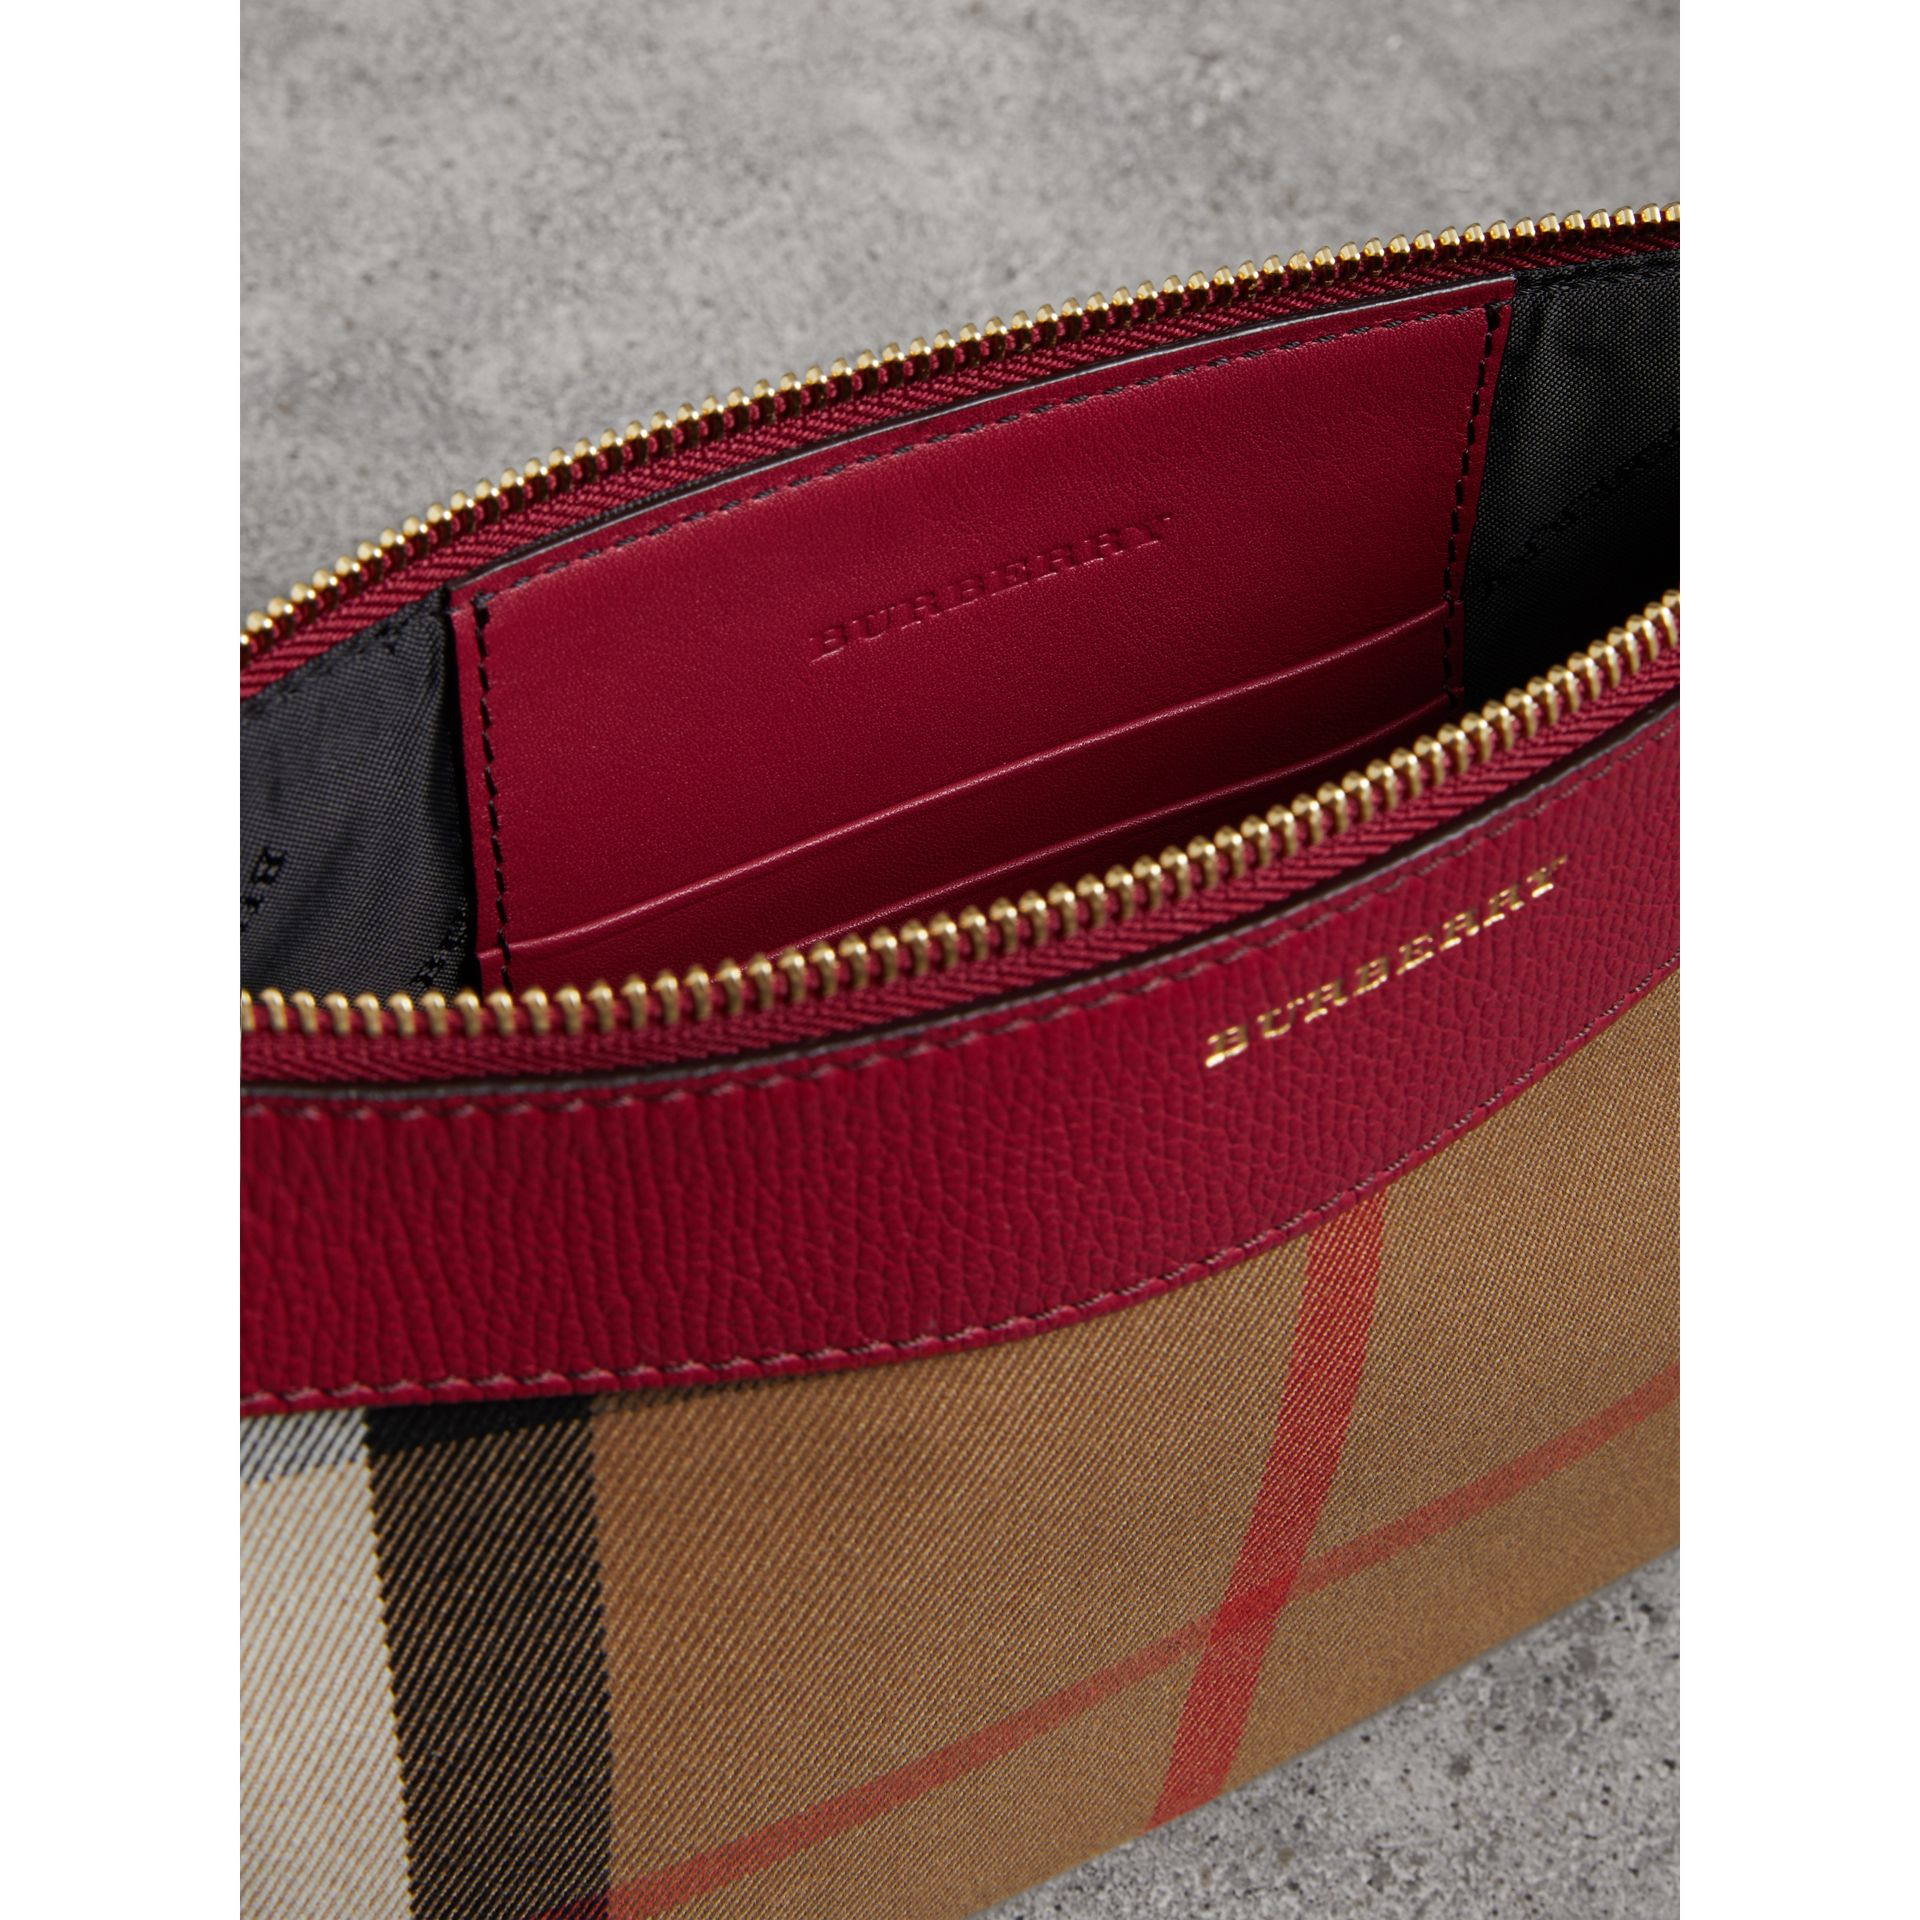 House Check and Leather Clutch Bag in Military Red - Women | Burberry Singapore - gallery image 5